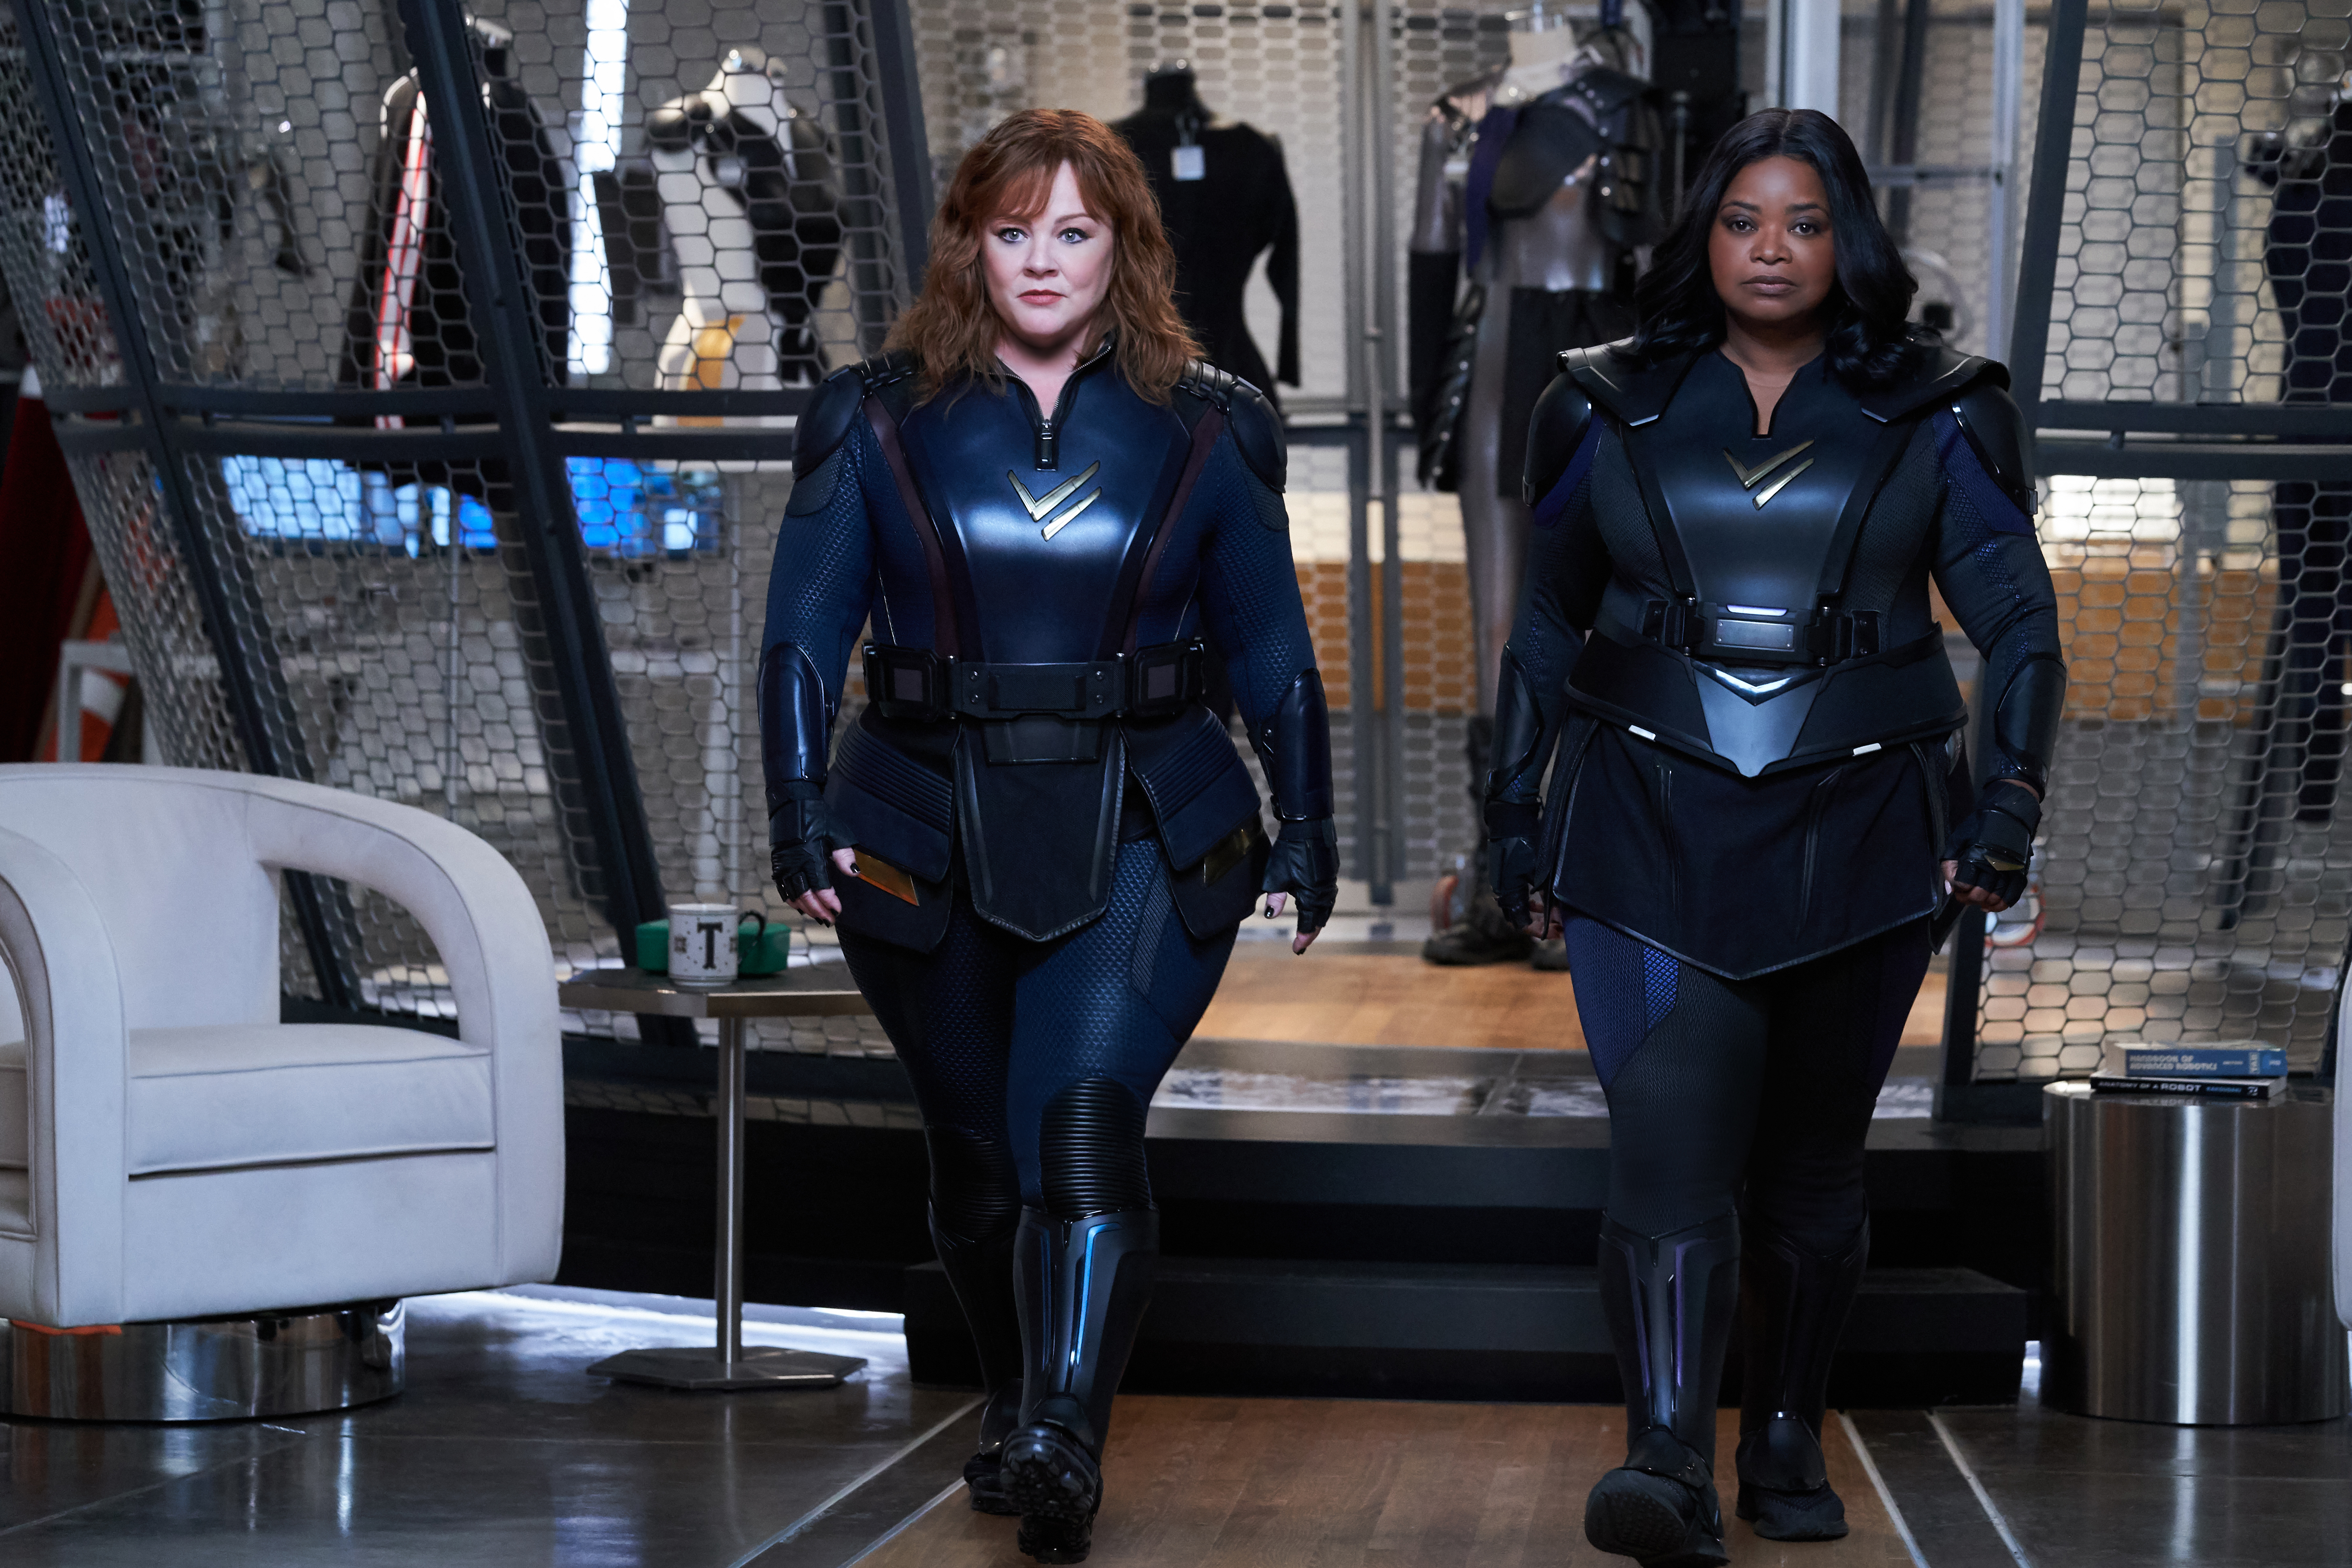 Melissa McCarthy and Octavia Spencer in black superhero getups in Thunder Force